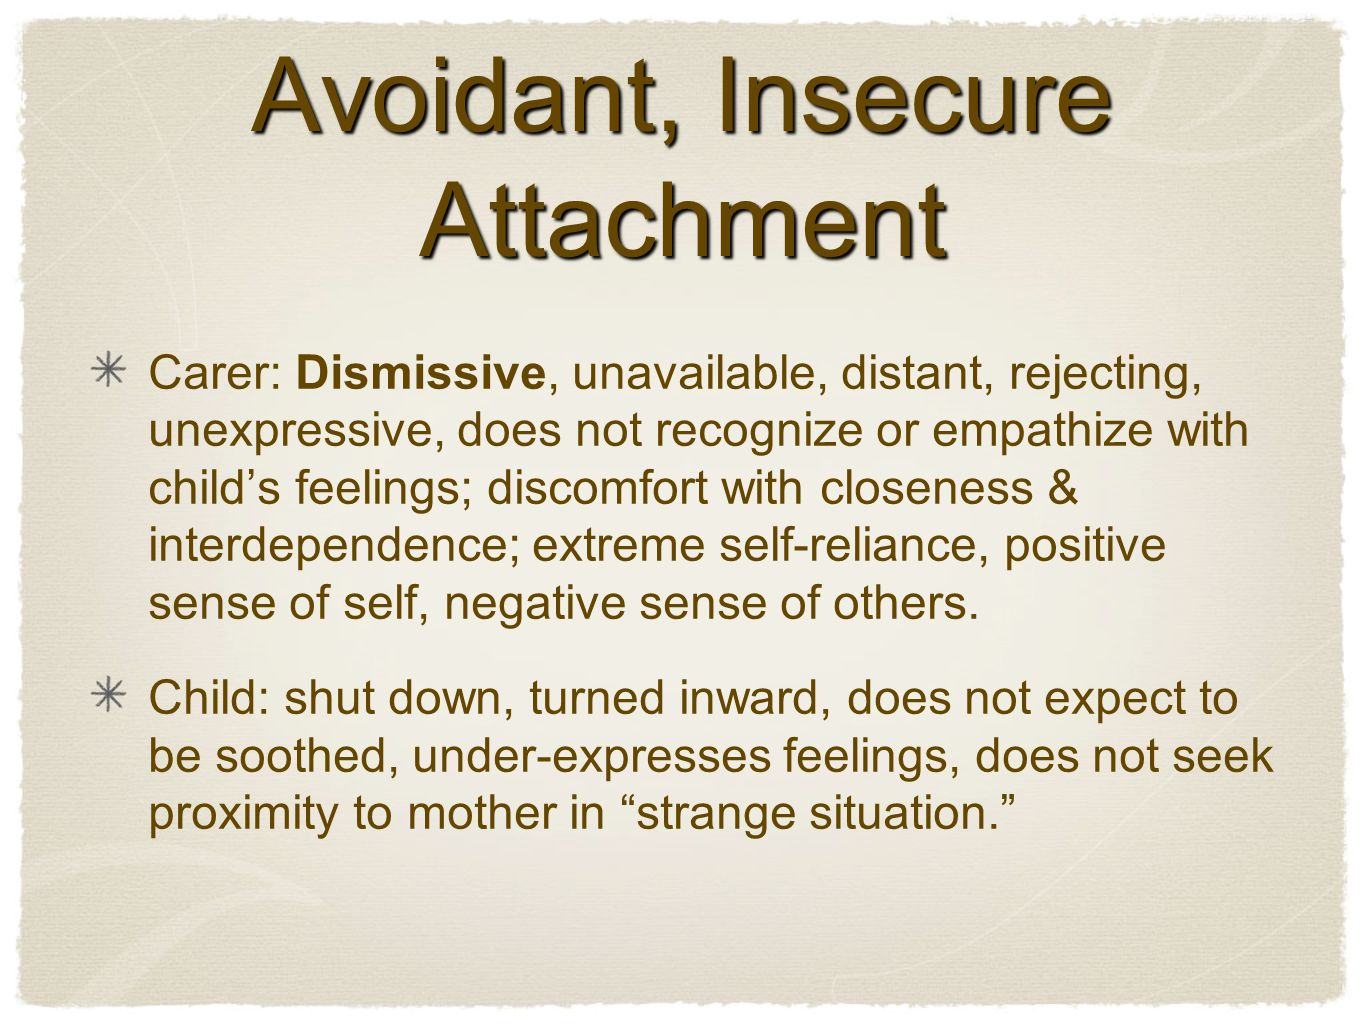 Avoidant, Insecure Attachment Carer: Dismissive, unavailable, distant, rejecting, unexpressive, does not recognize or empathize with child's feelings; discomfort with closeness & interdependence; extreme self-reliance, positive sense of self, negative sense of others.